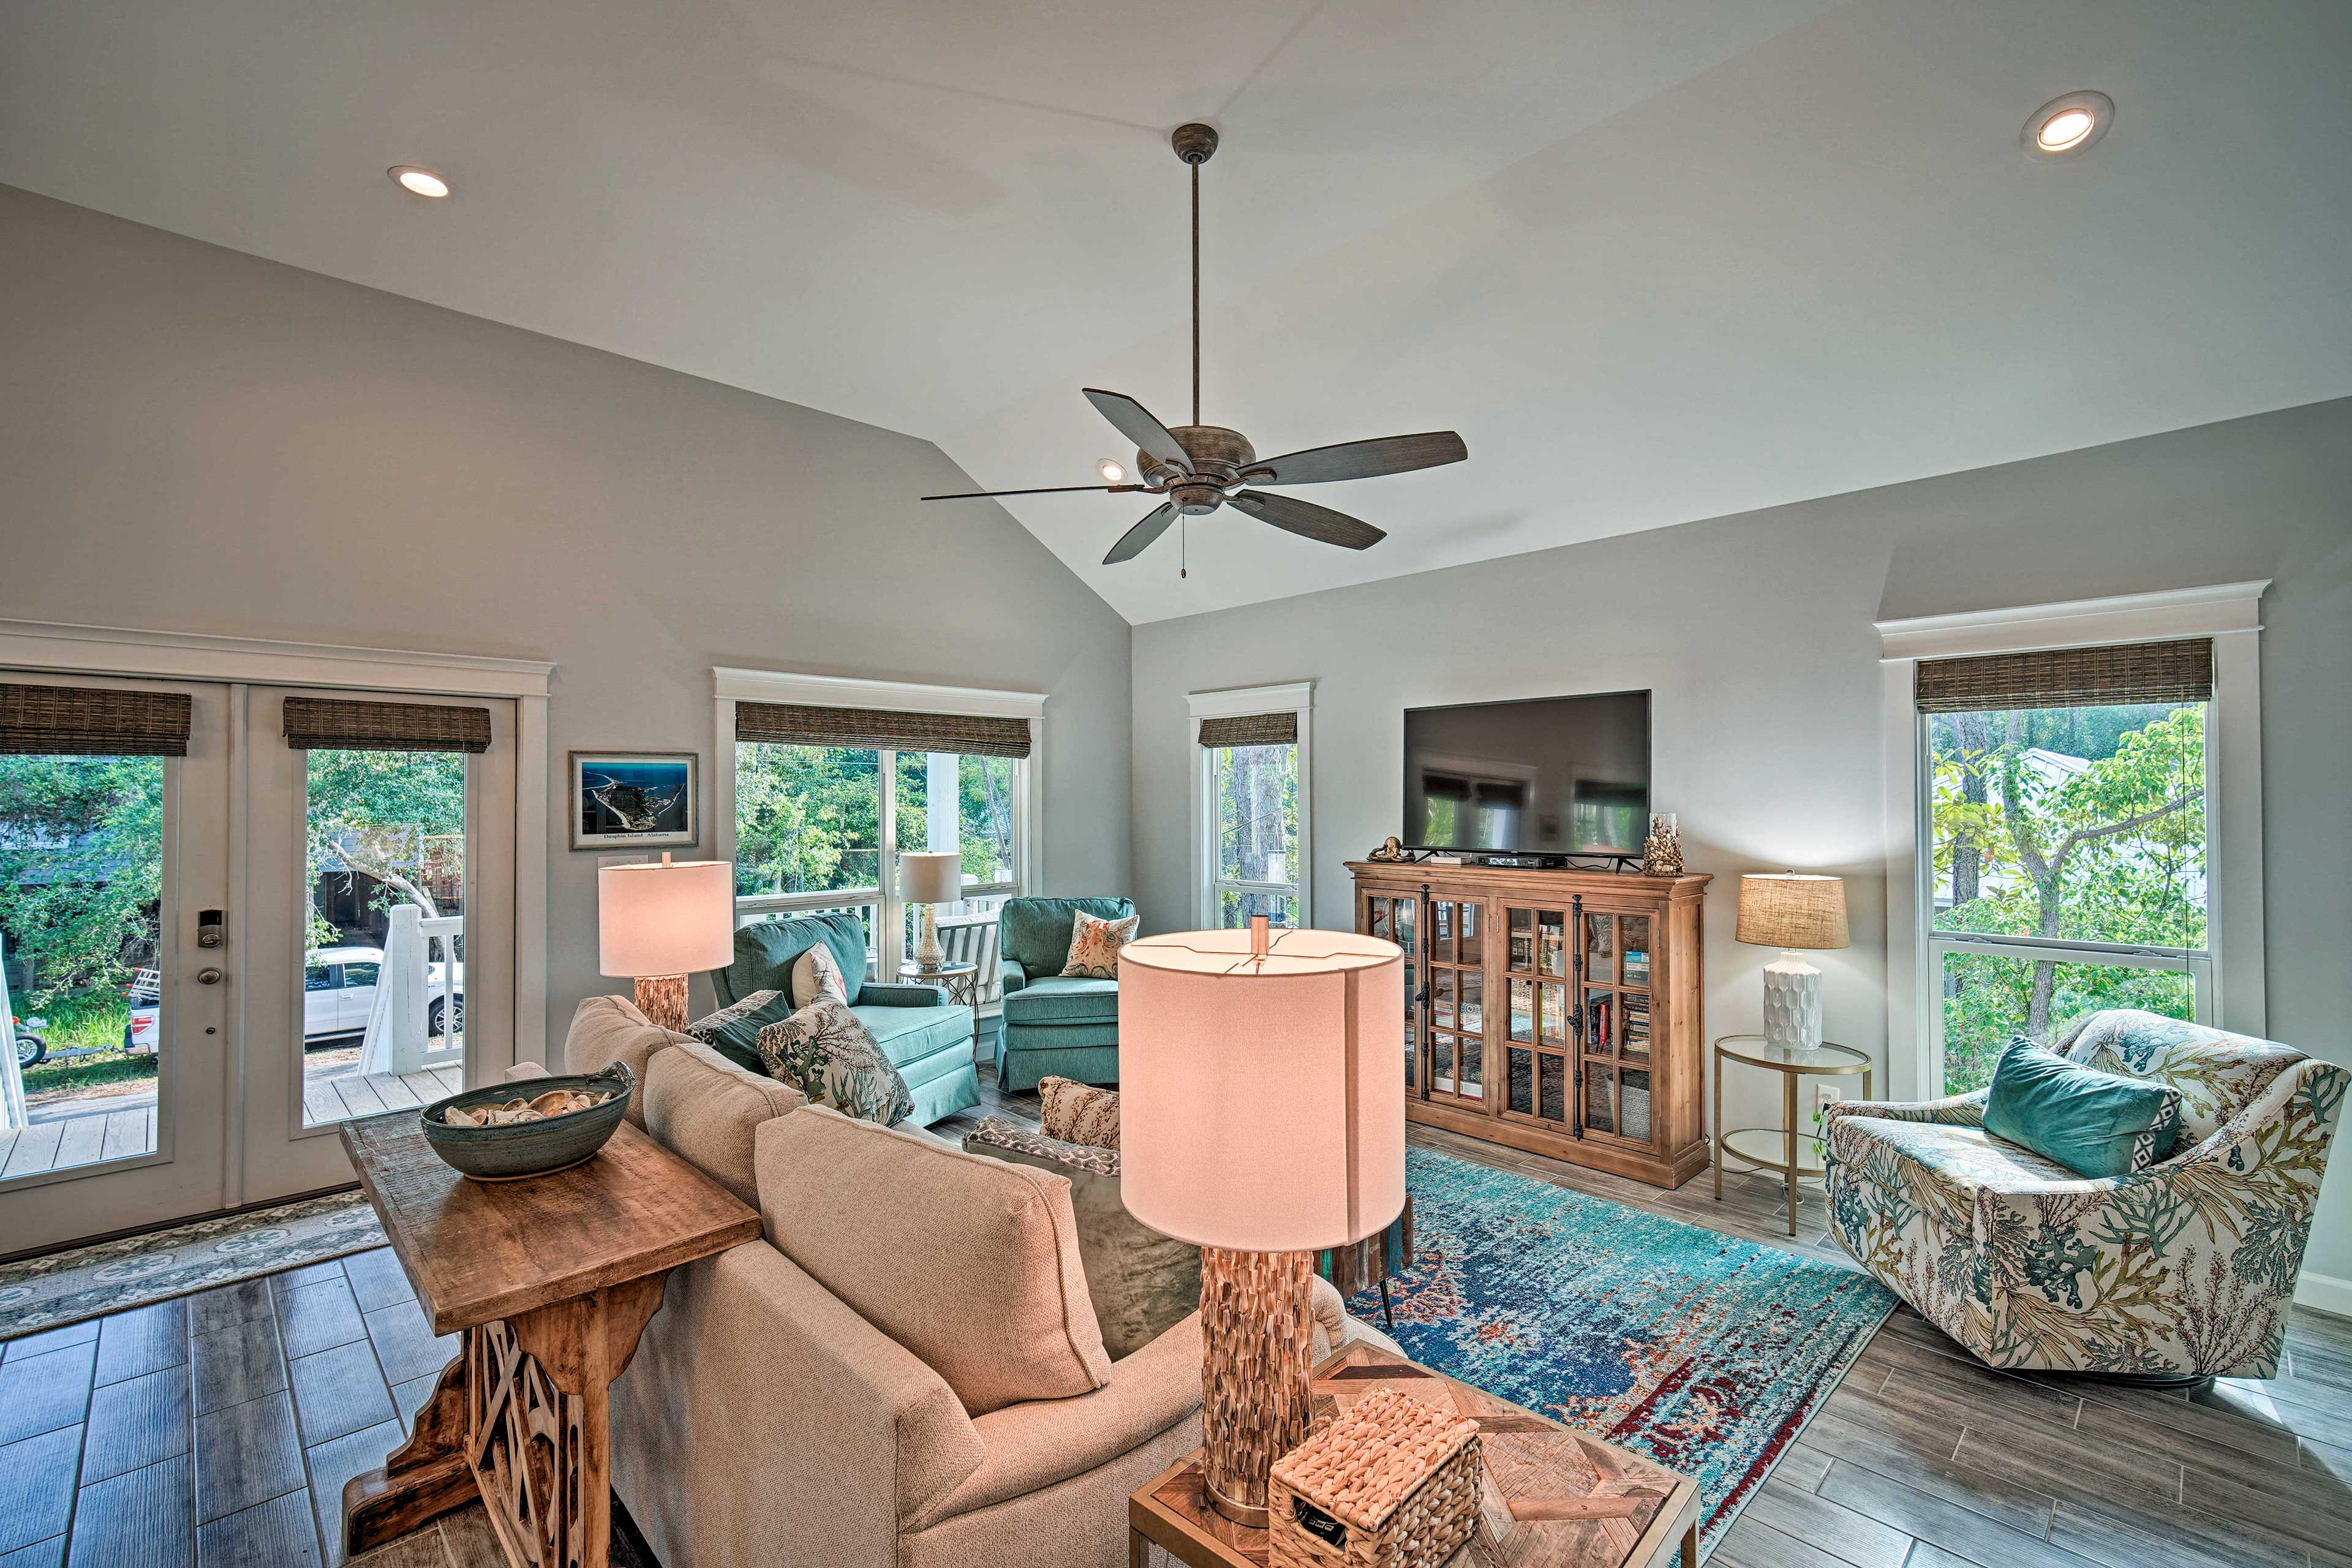 Inside, the living room is highlighted with coastal decor and colorful accents.